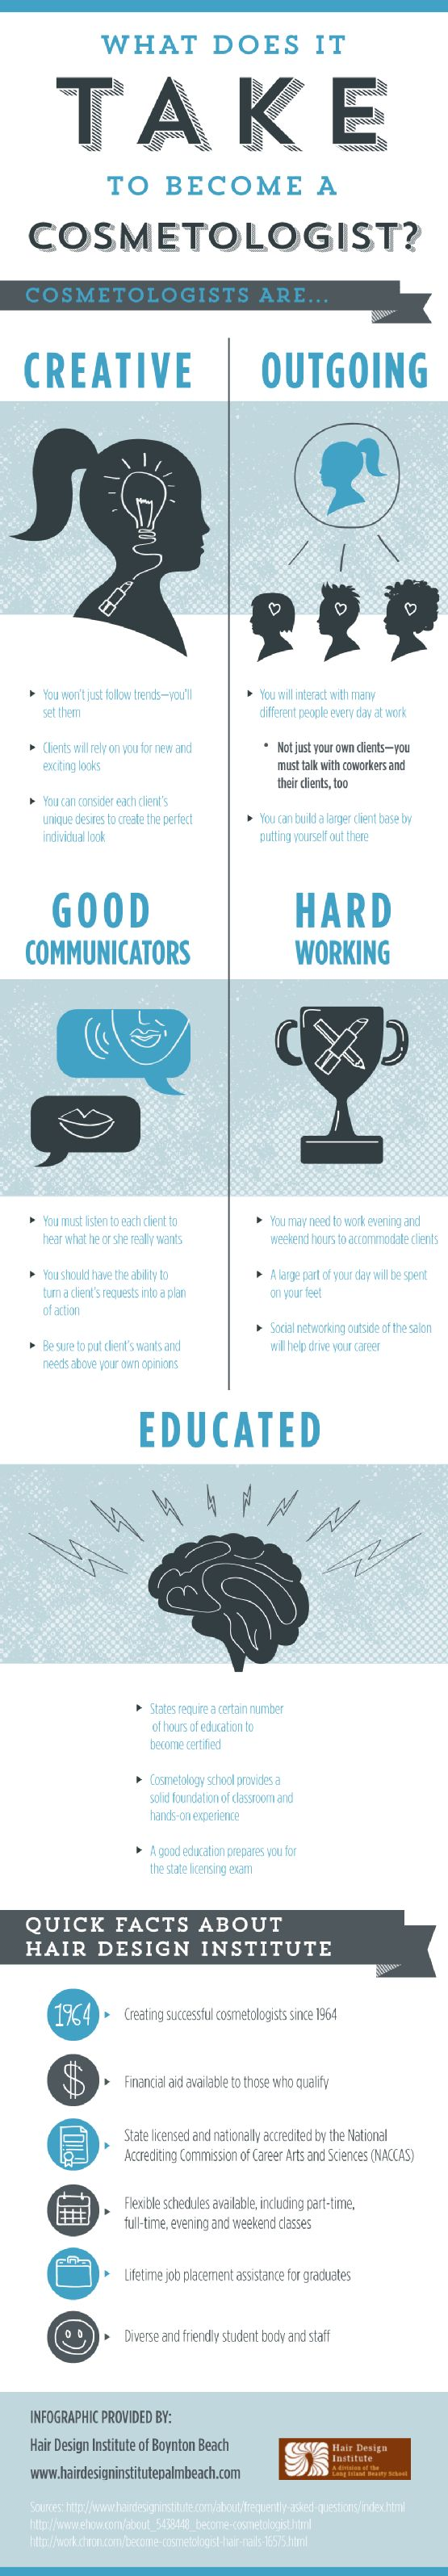 As a cosmetologist, you will spend a large part of your day on your feet! You can also boost your career by networking outside of your salon or other working environment. Find more tips by taking a look at this infographic from a cosmetology school in Boynton Beach.